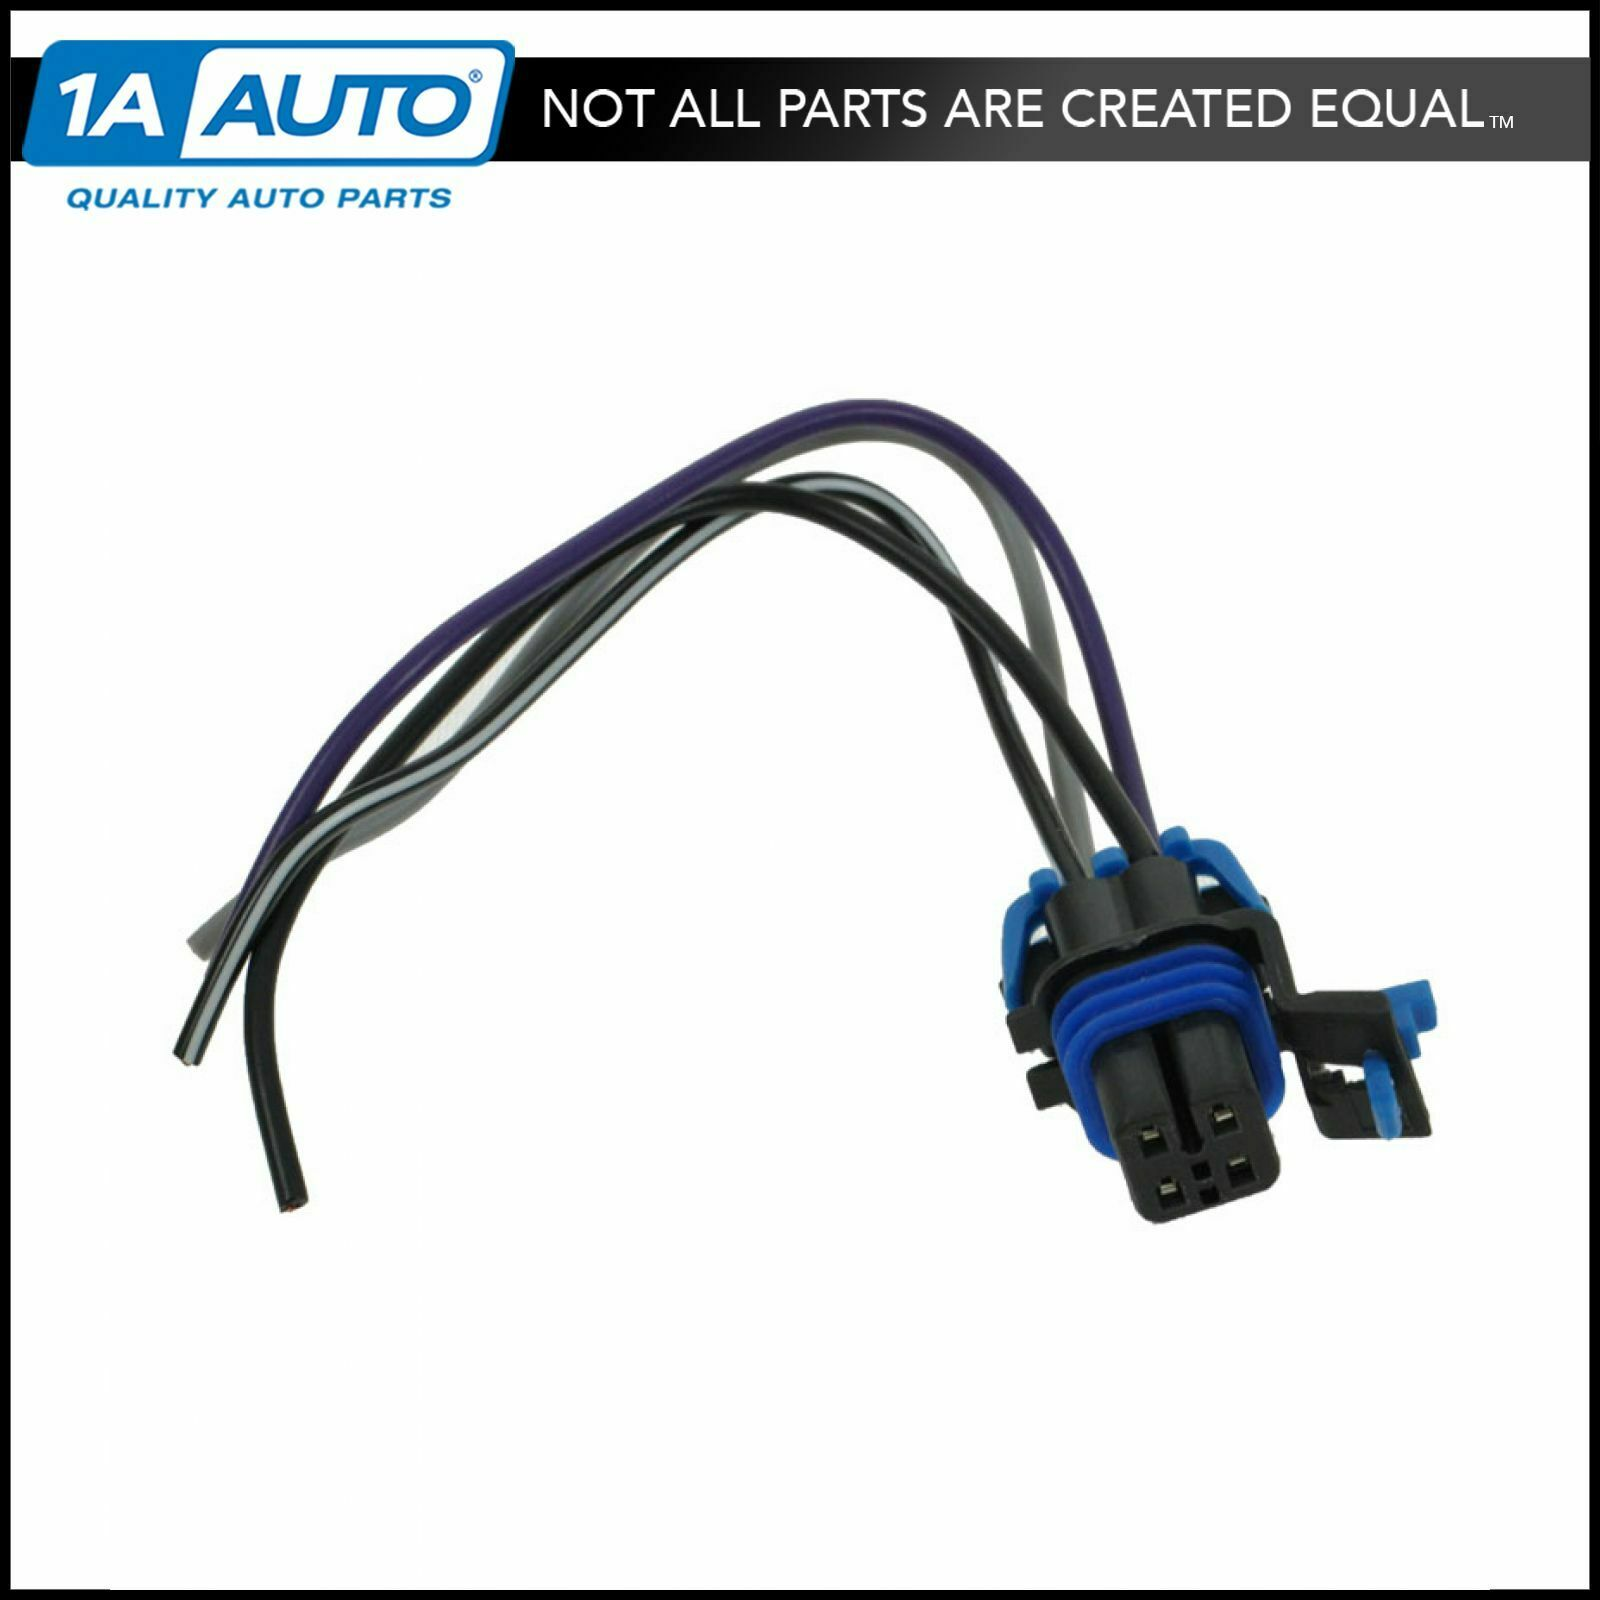 Fuel Pump Wiring Harness With Square Connector 4 Wire Pigtail For Oxigen Sencer 2000 Gmc Jimmy 1 Of 2only 3 Available